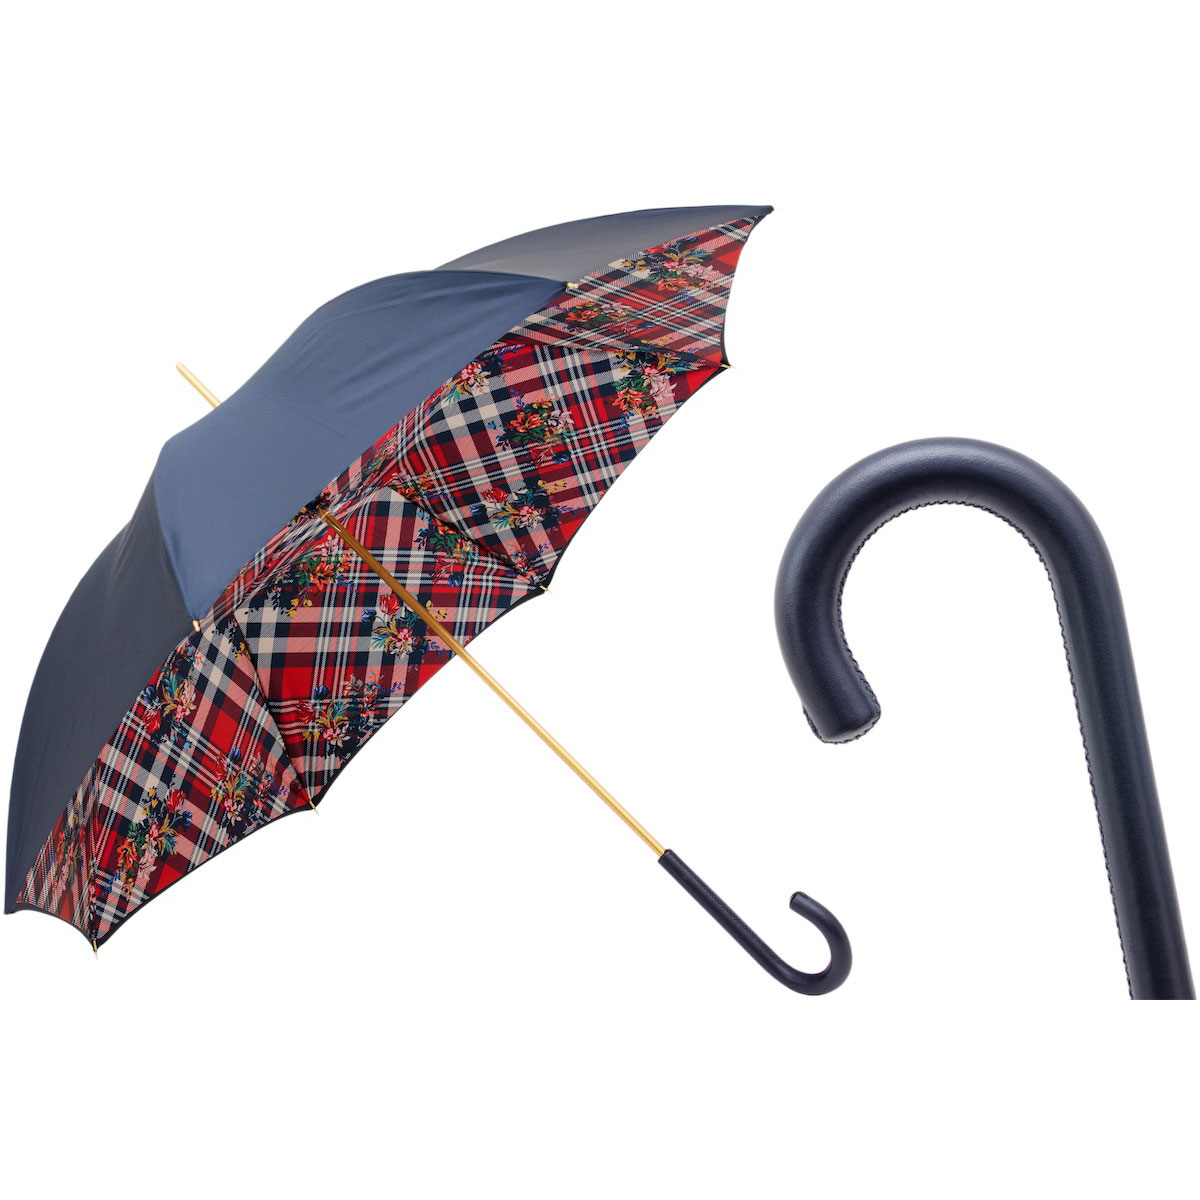 Pasotti Women's Classic Navy Blue Umbrella with Stripes and Flowers